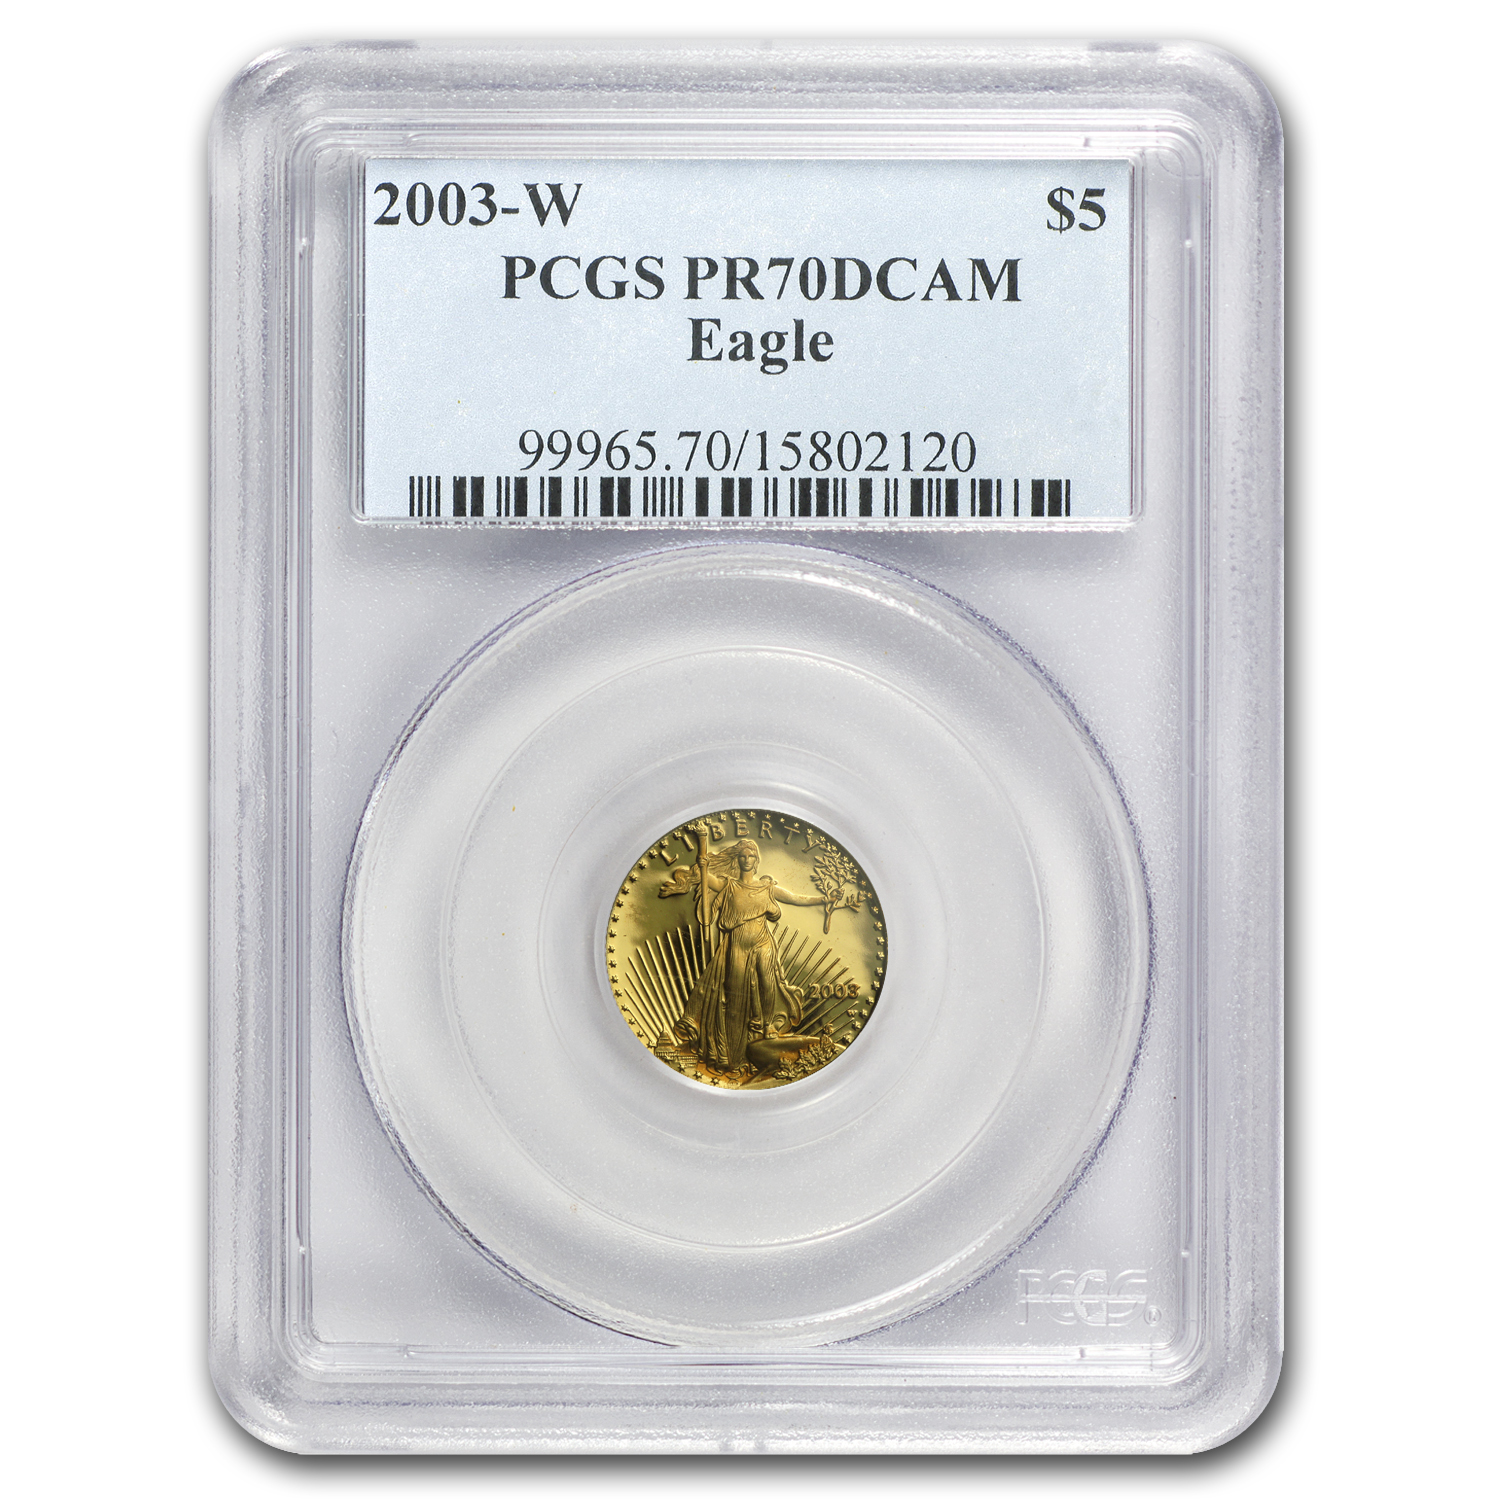 2003-W 1/10 oz Proof Gold American Eagle PR-70 PCGS